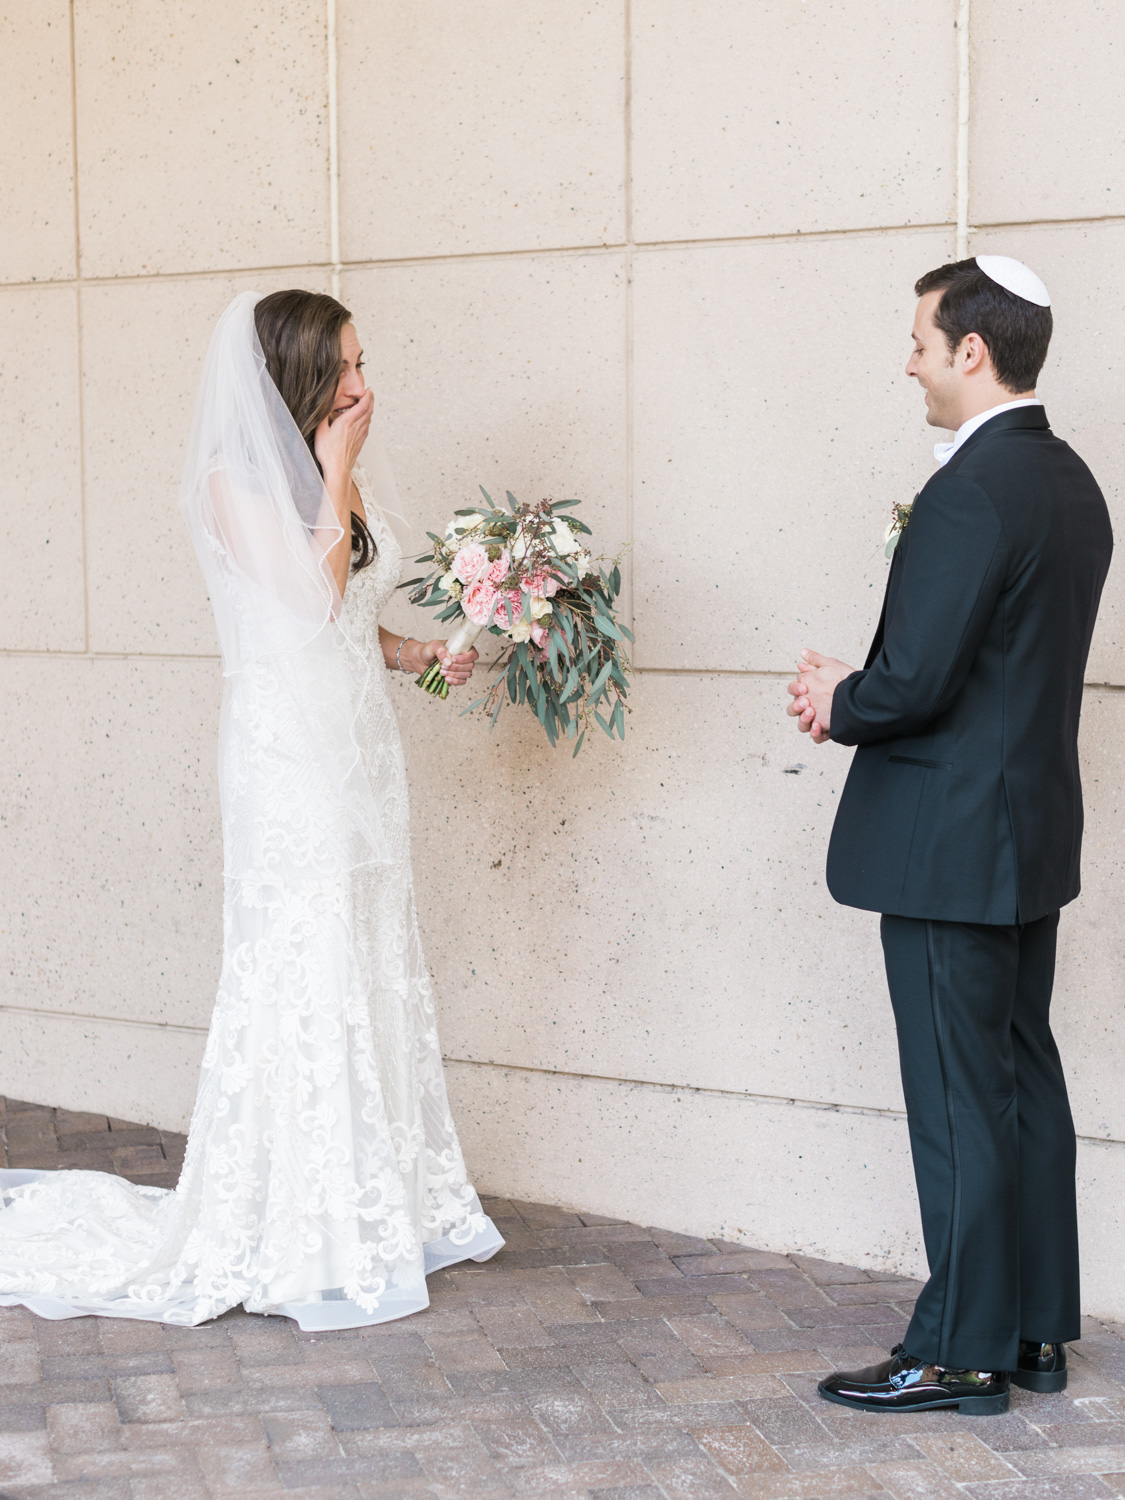 Richmond Jewish Marble Hall Wedding | Omni Hotel | VMFA | Beth Ahabah | Wedding Photography | Kelsey & Nate | kelseyandnate.com